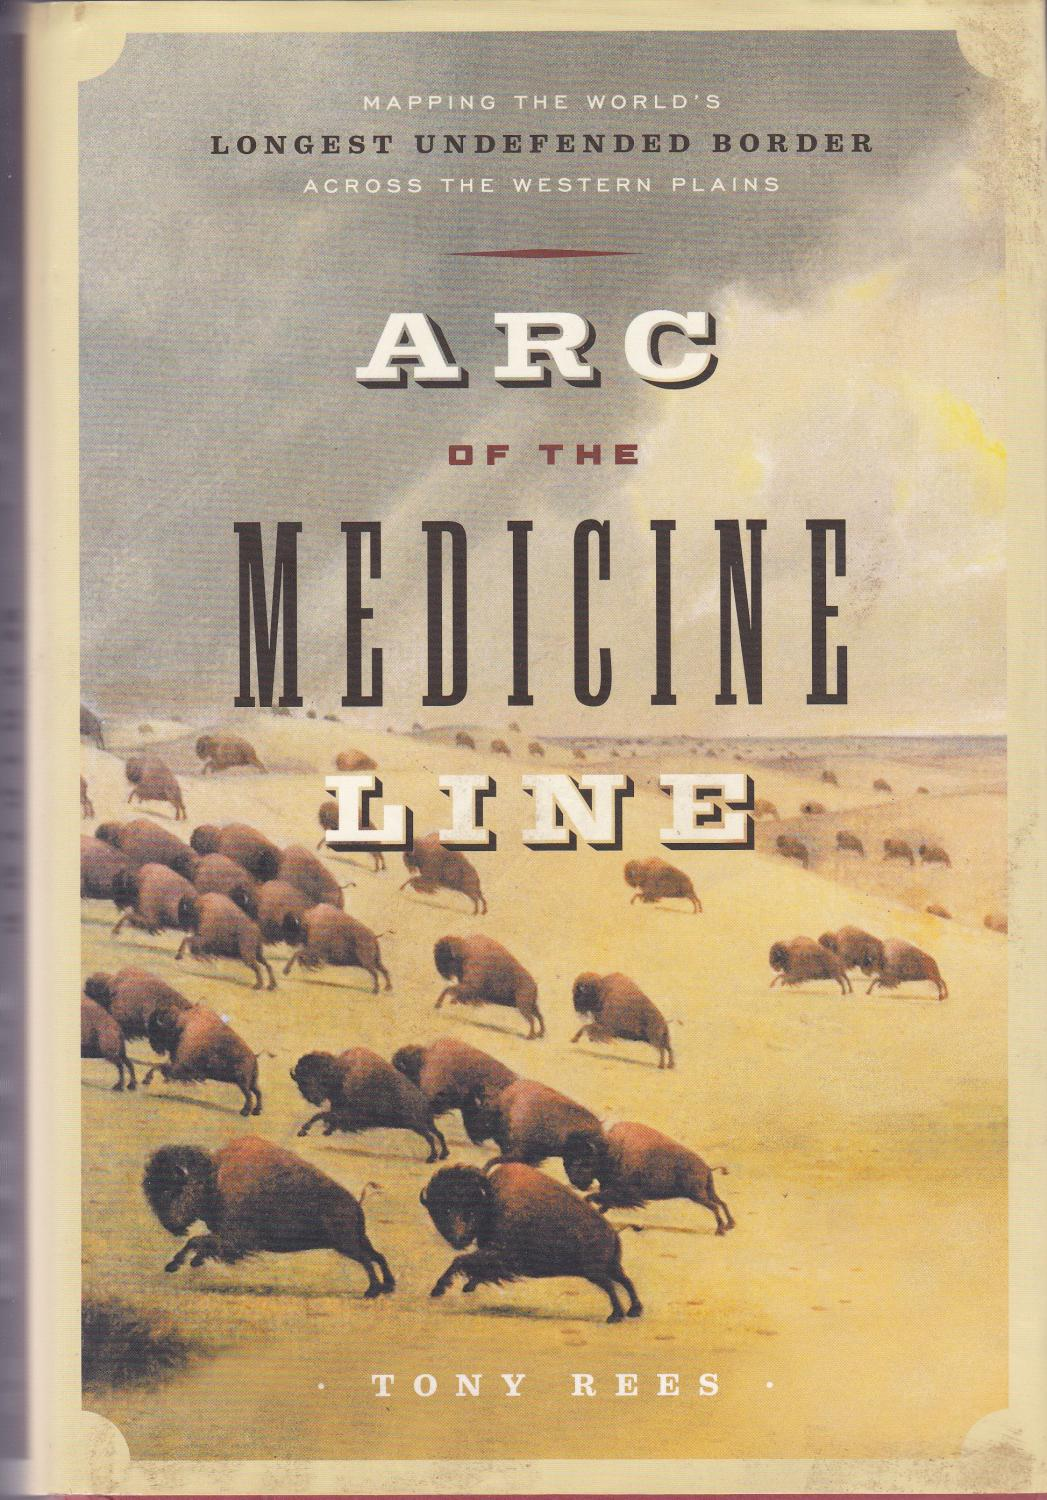 Arc of the Medicine Line_Tony Rees